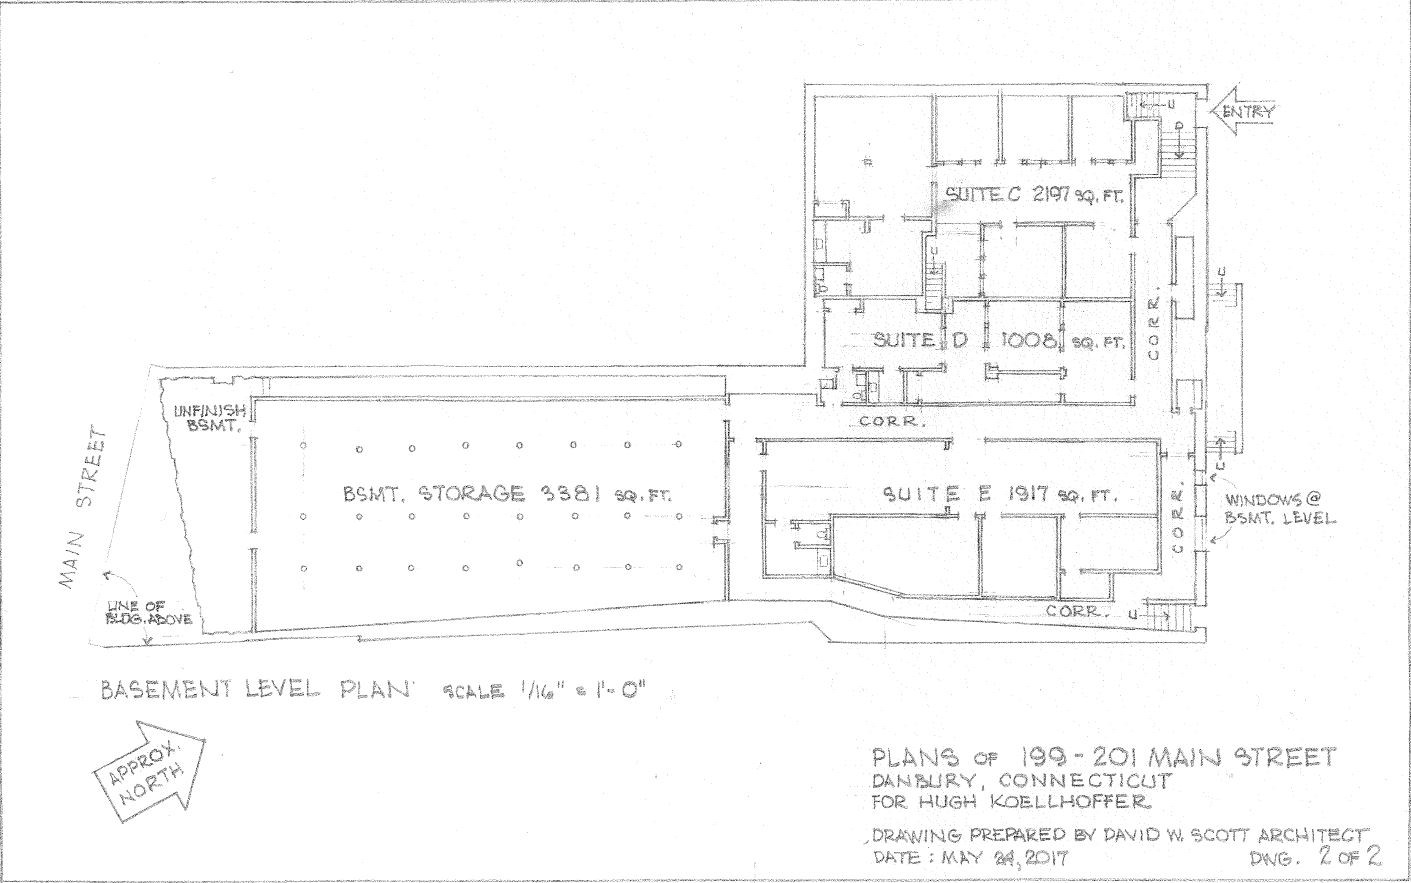 199-201 Main Street Lower Level Plan